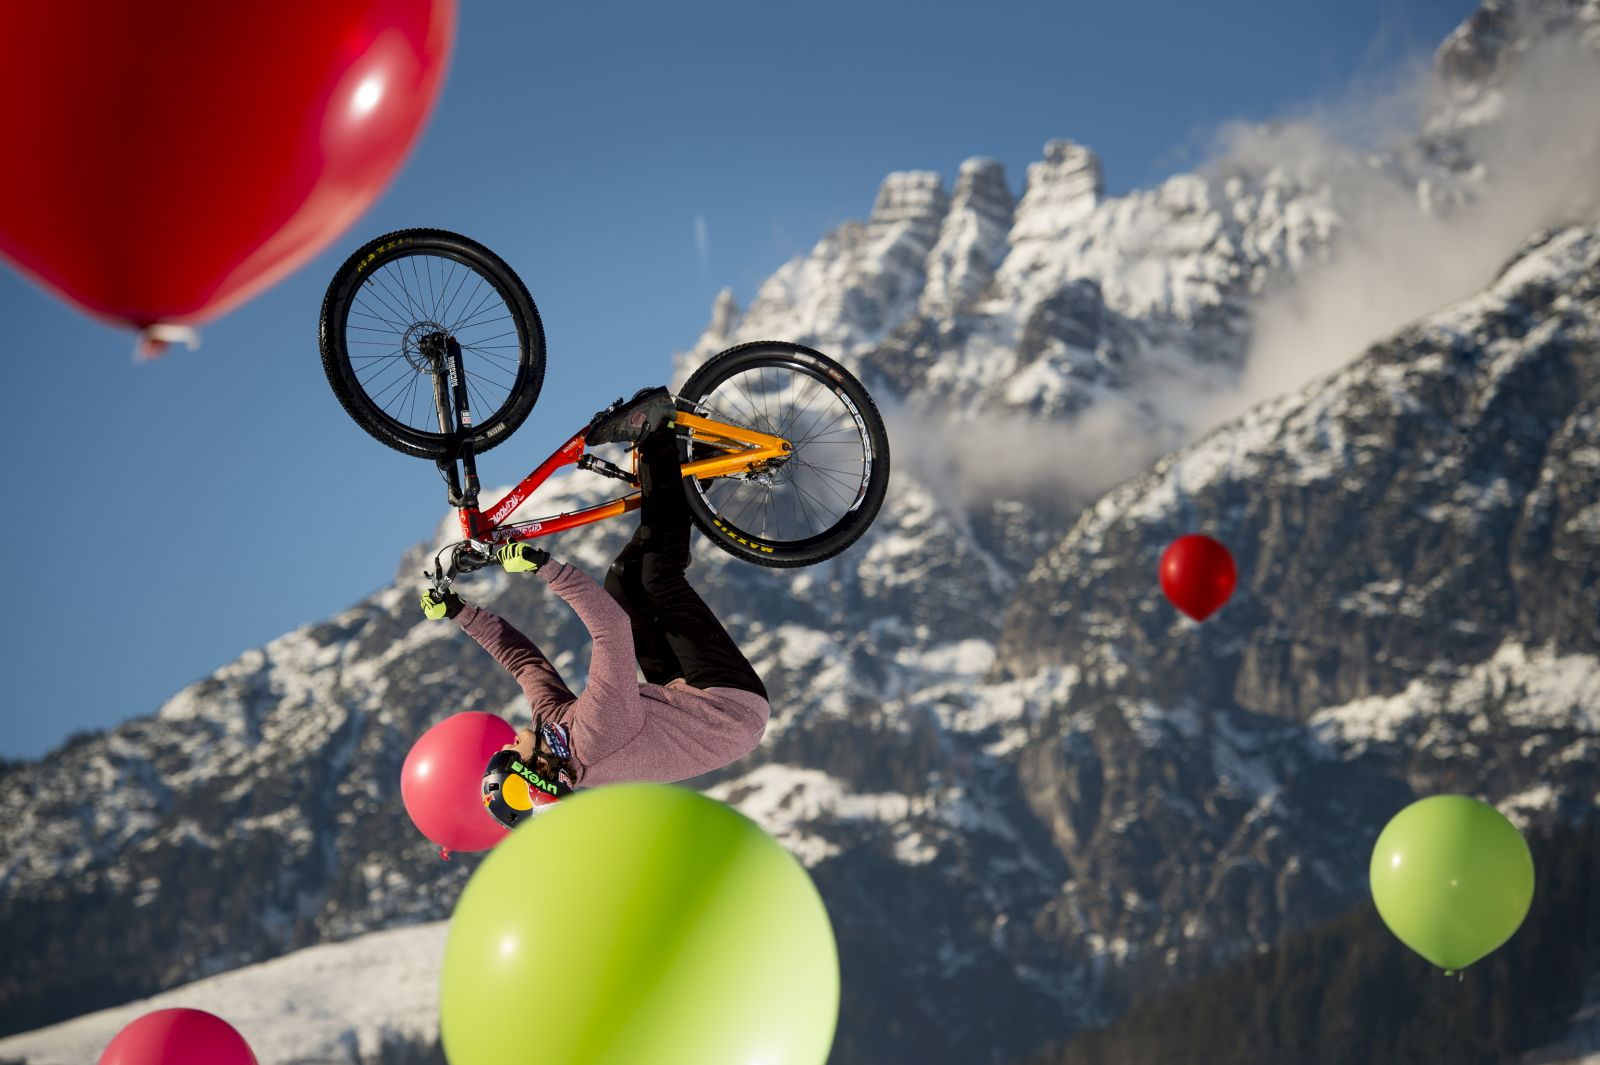 WhiteStyle_2016_Balloon_Shooting_Szymon_Godziek_Photo_Christoph_Laue_02